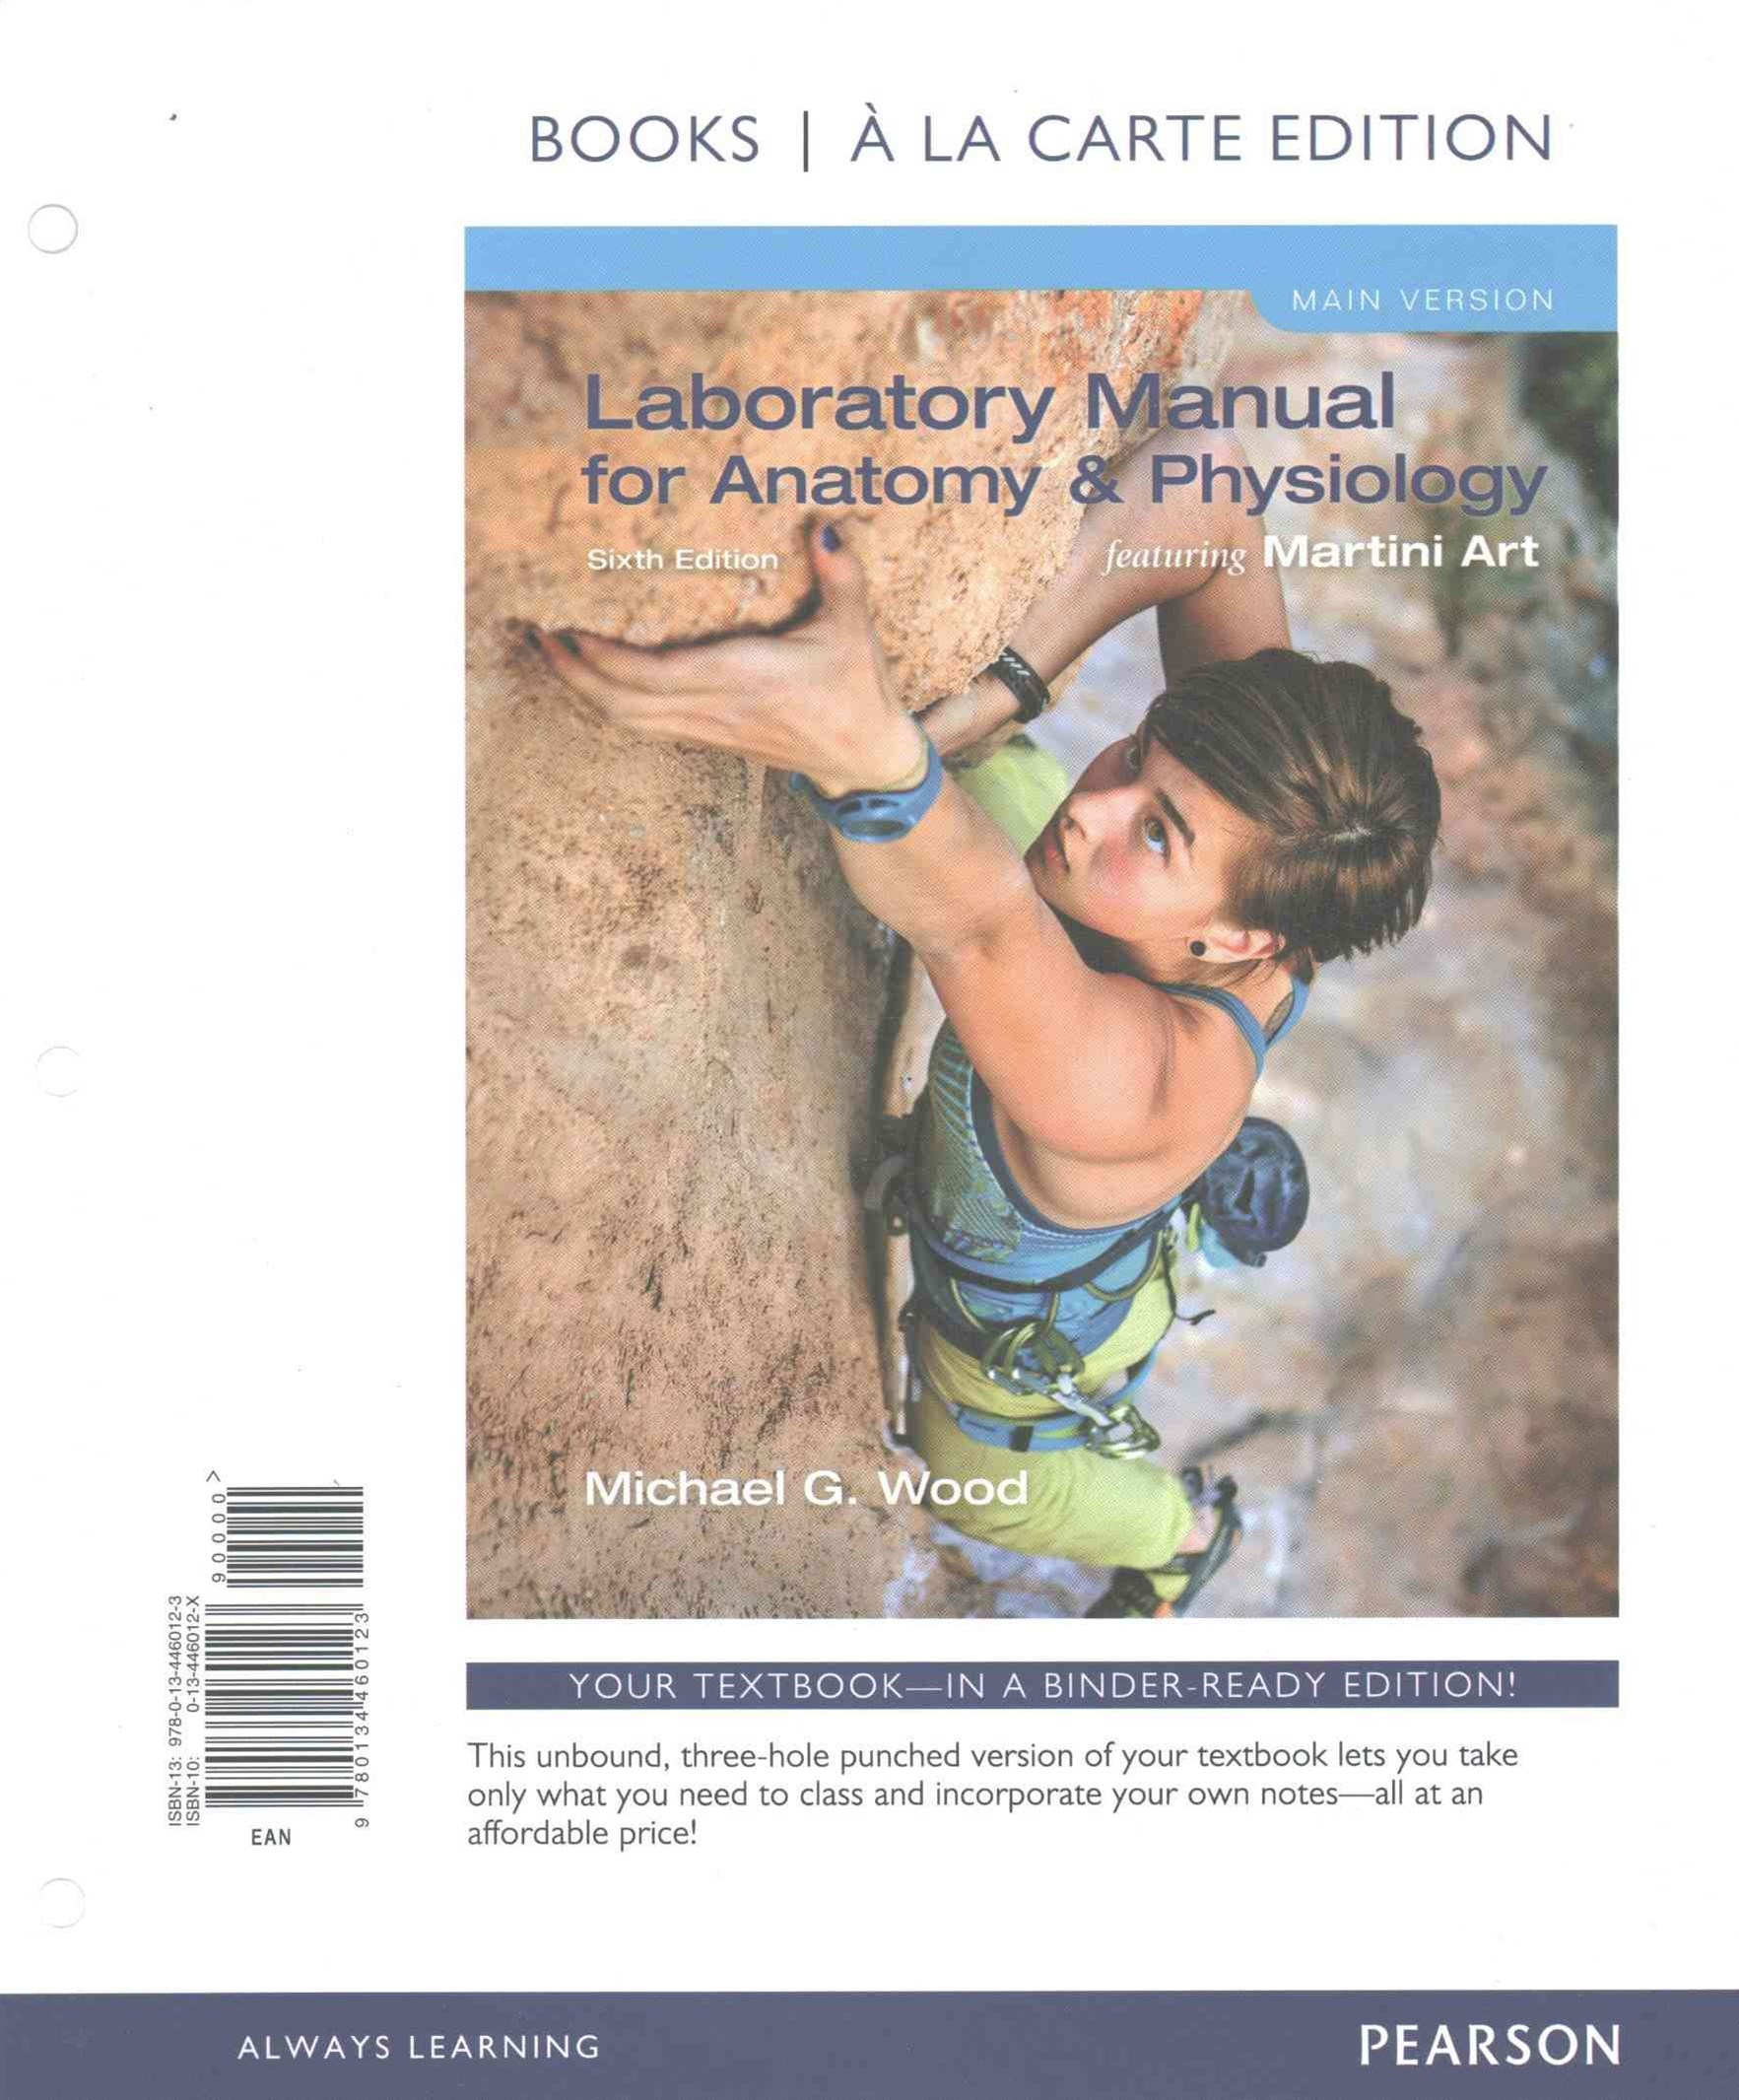 Laboratory Manual for Anatomy and Physiology Featuring Martini Art, Main Version, Books a la Carte